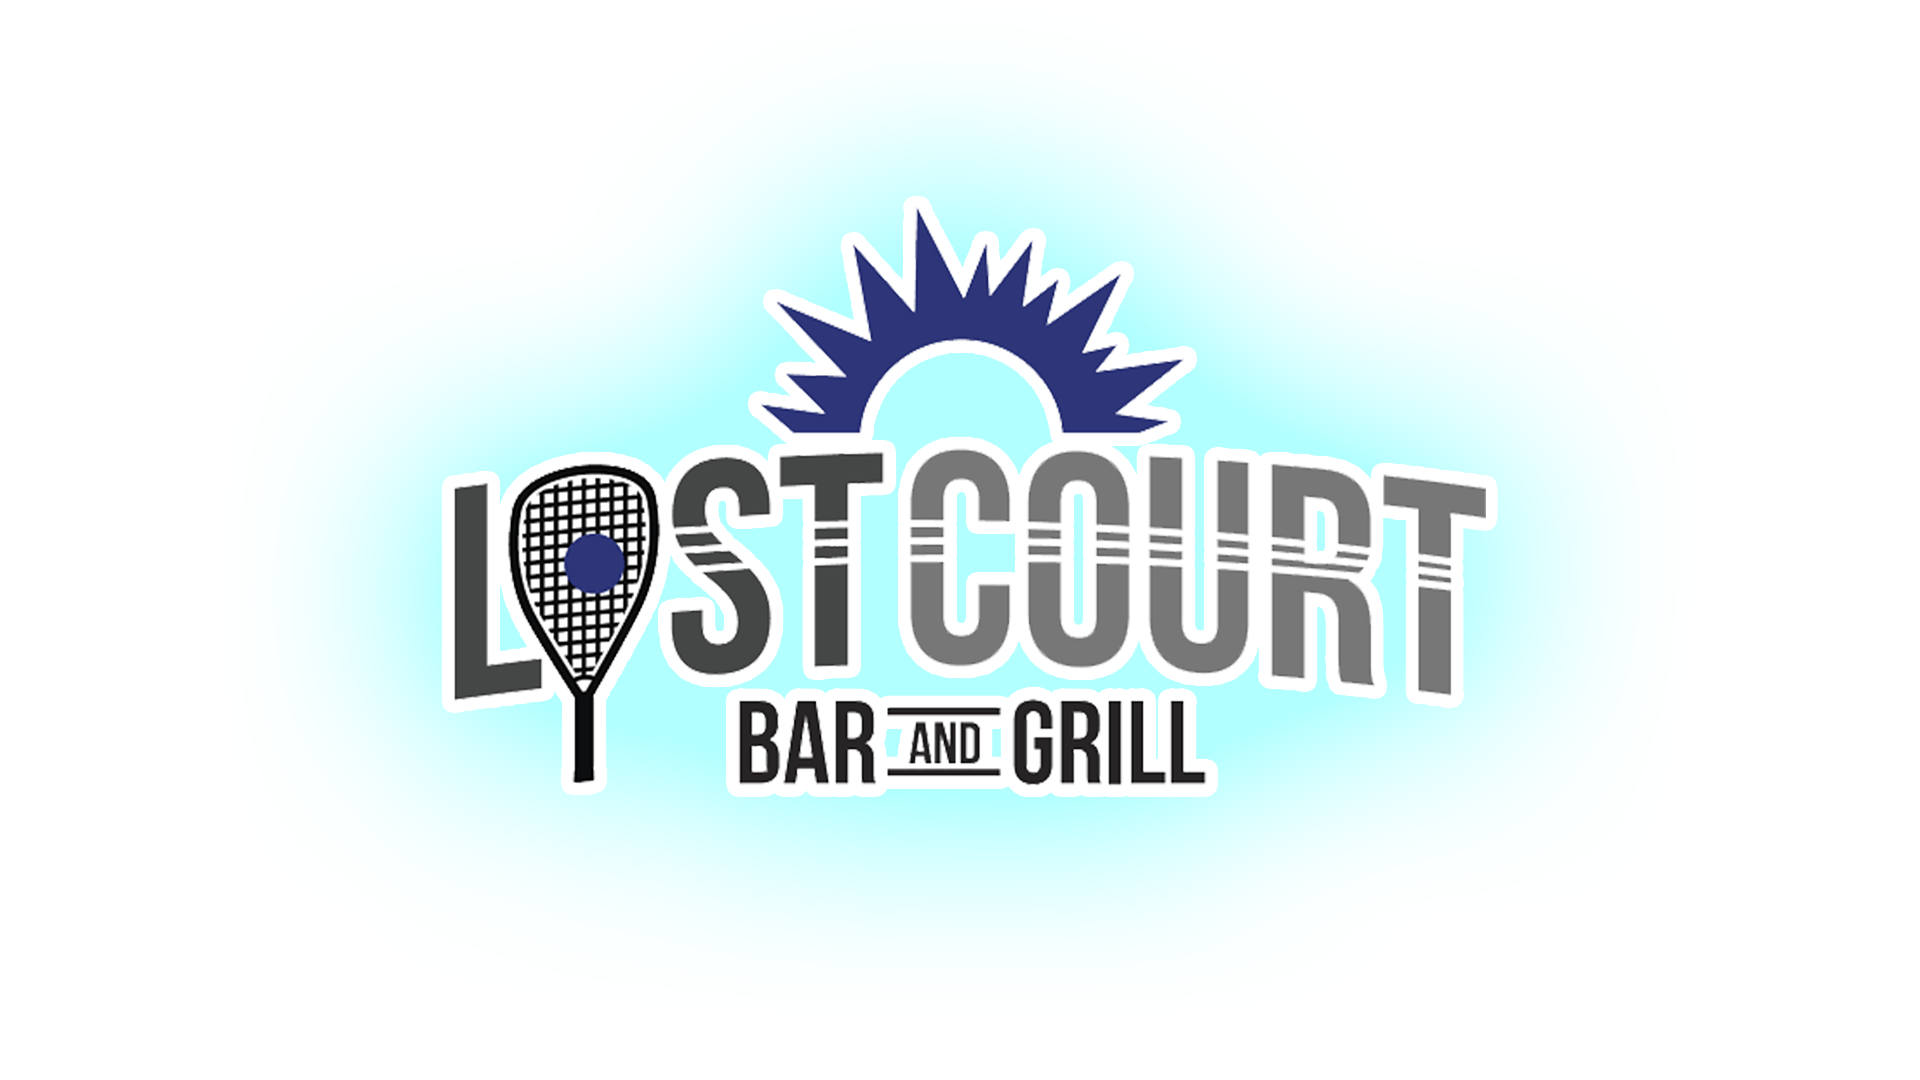 The Lost Court Bar and Grill at Prairie Athletic Club Logo